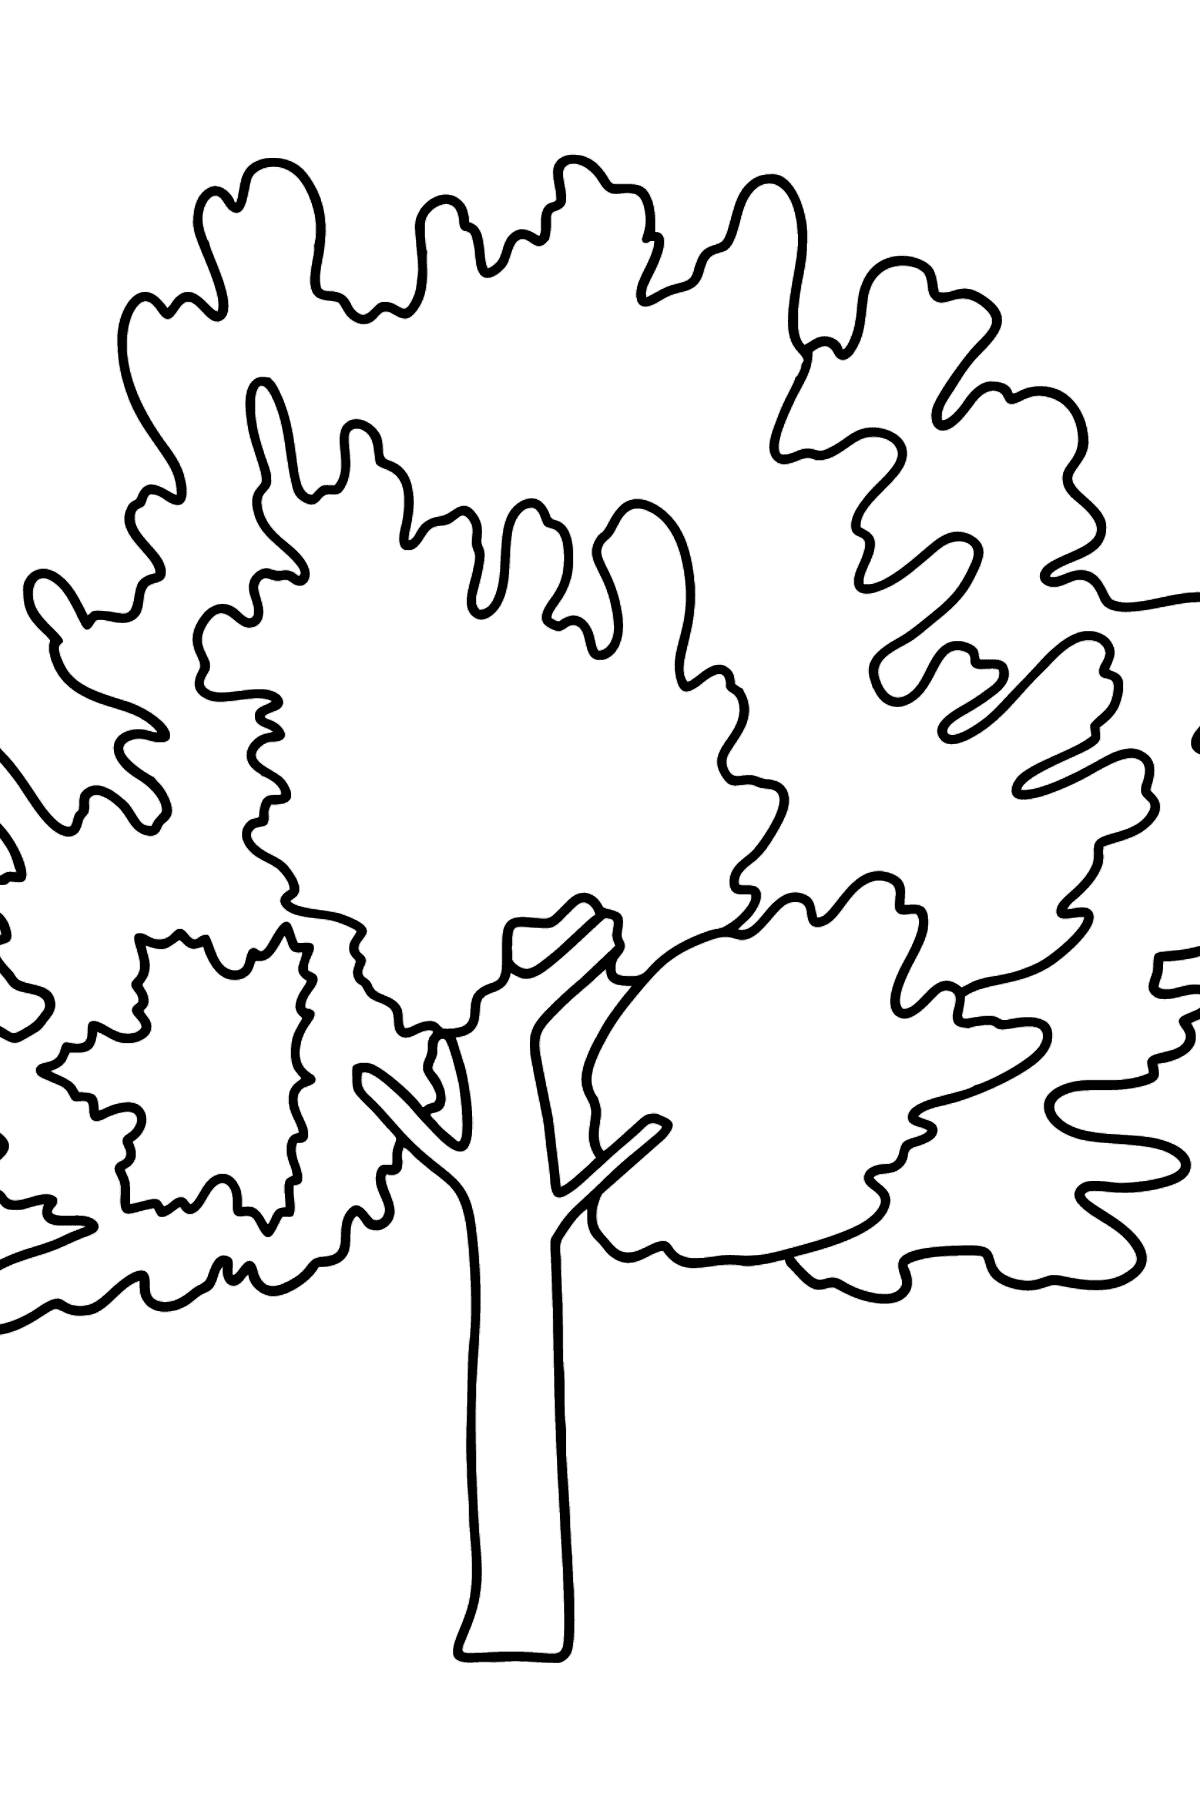 Maple coloring page - Coloring Pages for Kids